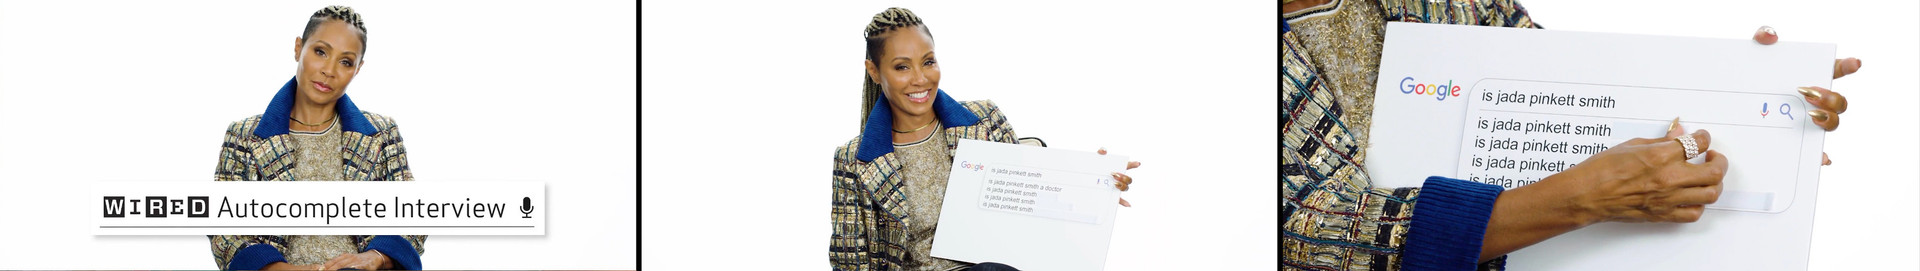 Jada Pinkett Smith Answers the Web's Most Searched Questions | WIRED